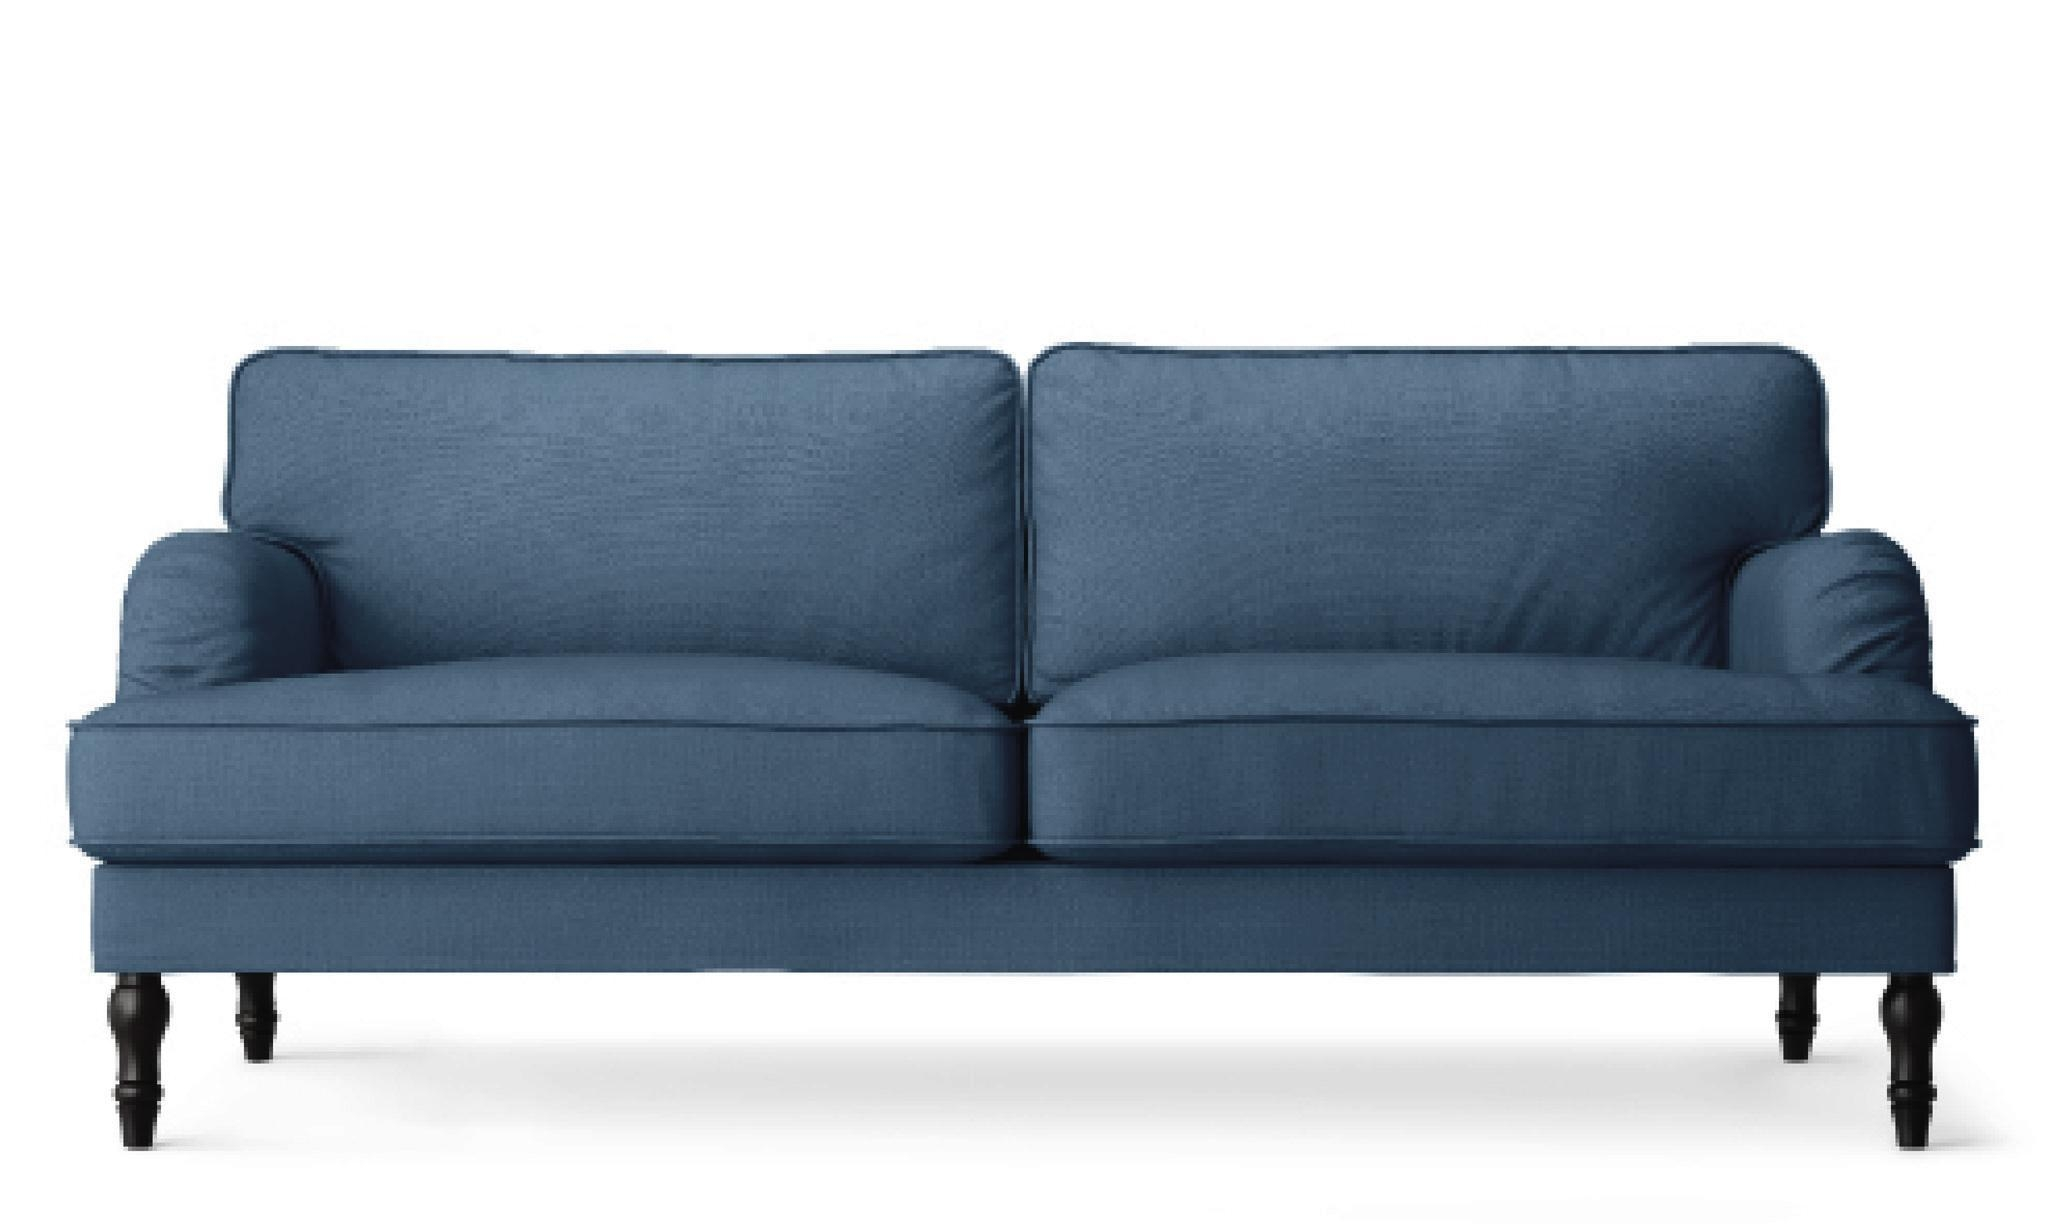 Fabric Sofas | Ikea Ireland – Dublin Intended For Sofas (Image 7 of 20)